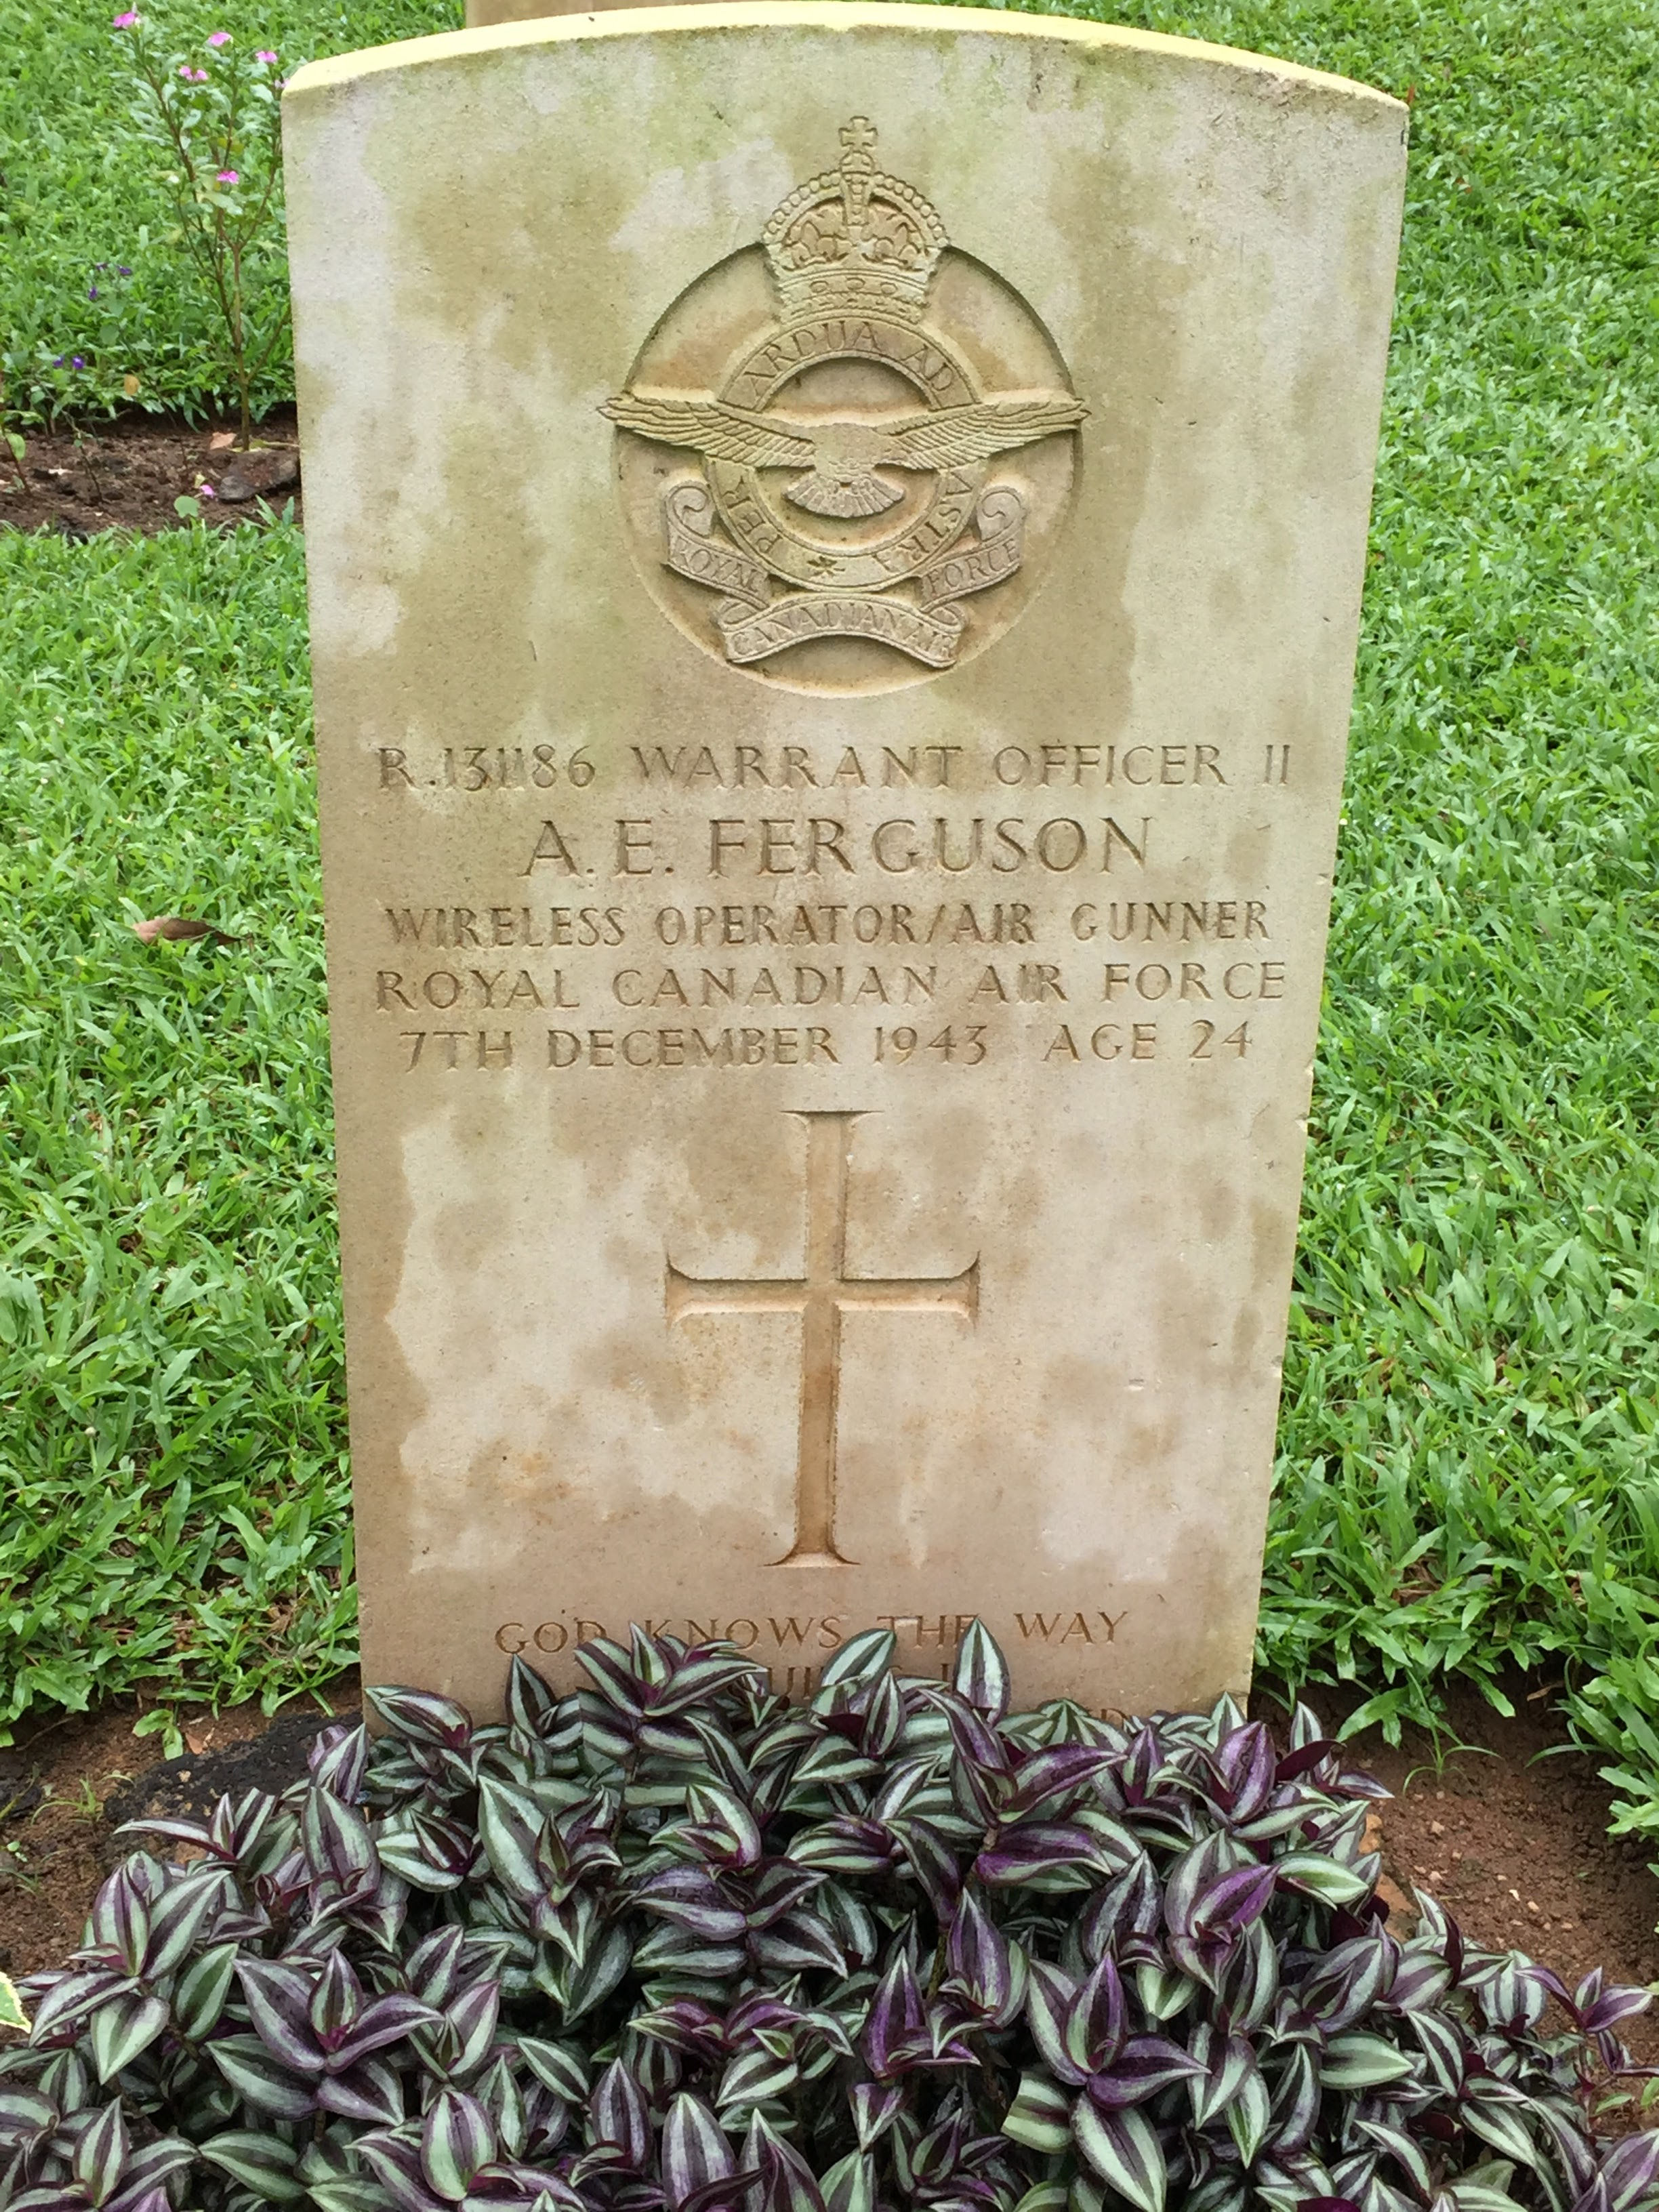 Grave Marker– Picture taken during our visit to the Kandy War Cemetery